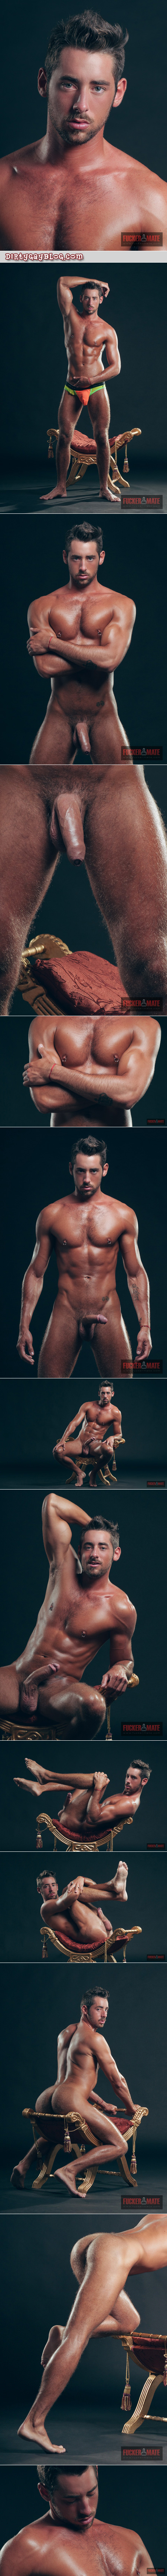 Uncut Spanish stud with a dark tan in the nude.